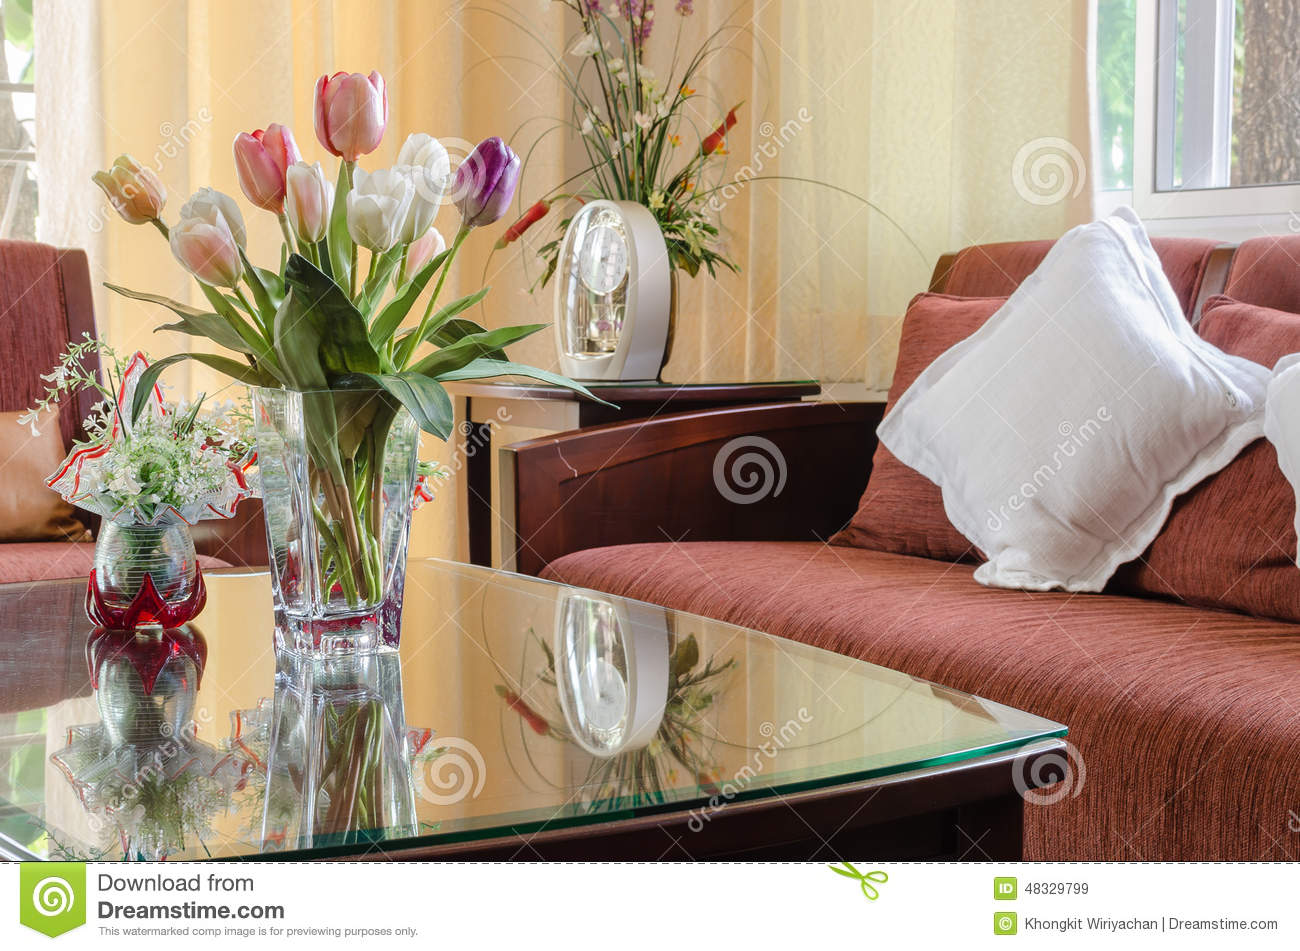 Royalty Free Stock Photo Download Living Room With Red Wooden Sofa And Vase Of Flower